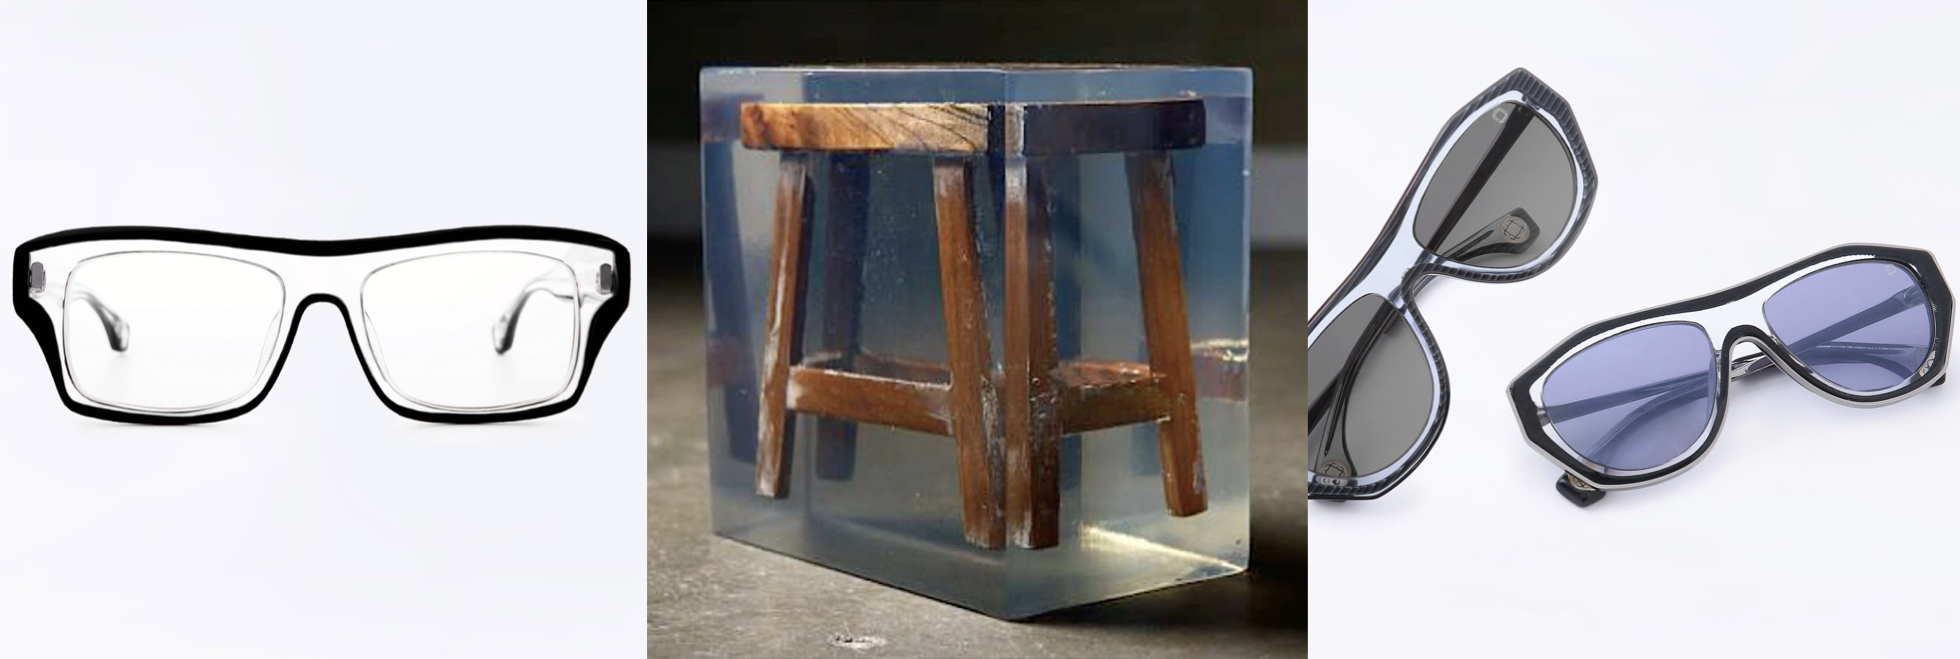 Inspiration behind Blake Kuwahara's Eyewear: An antique wooden stool displayed that was encased in a clear Lucite block .